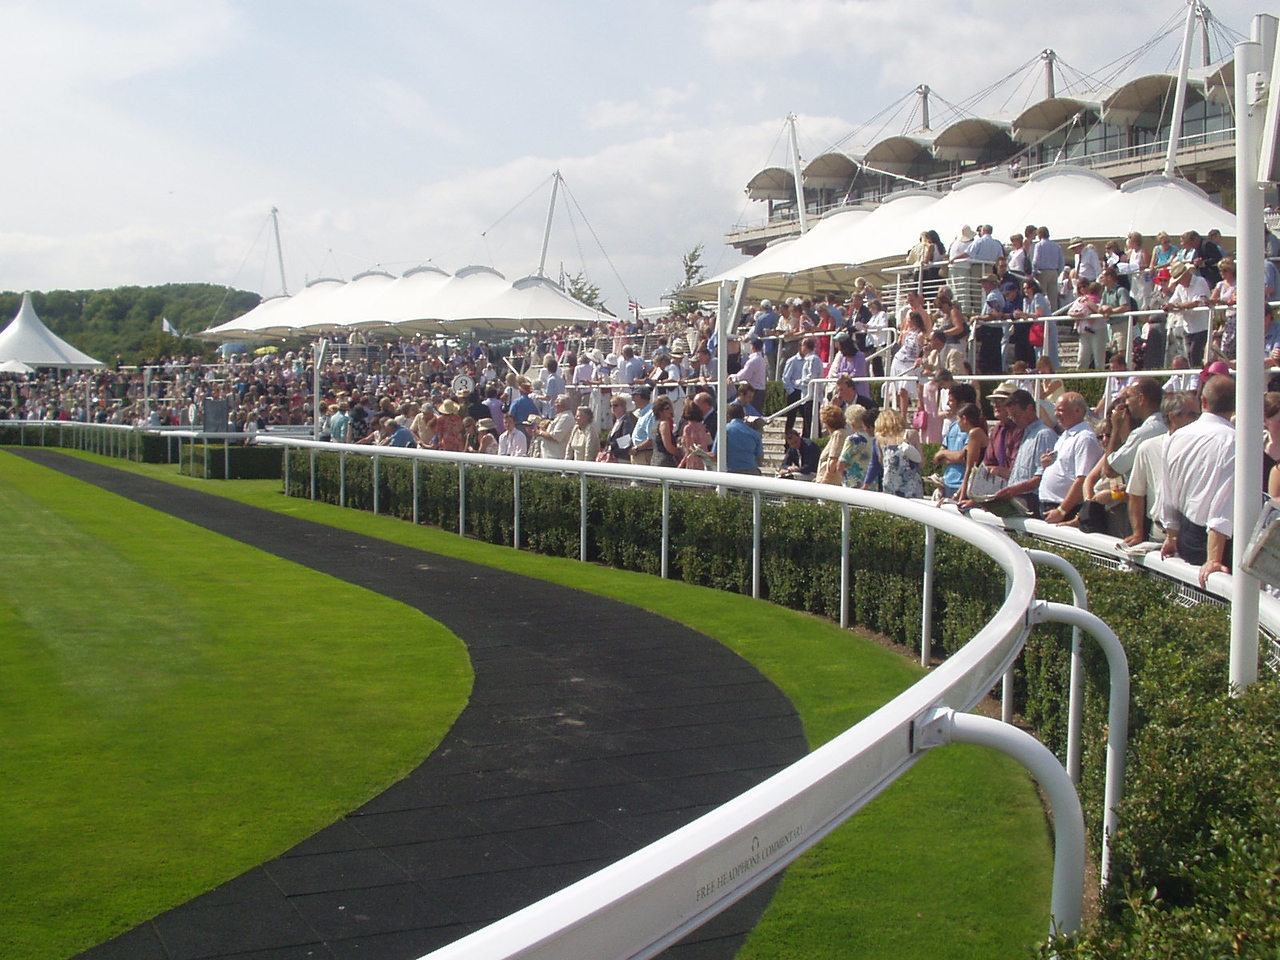 In the parade ring